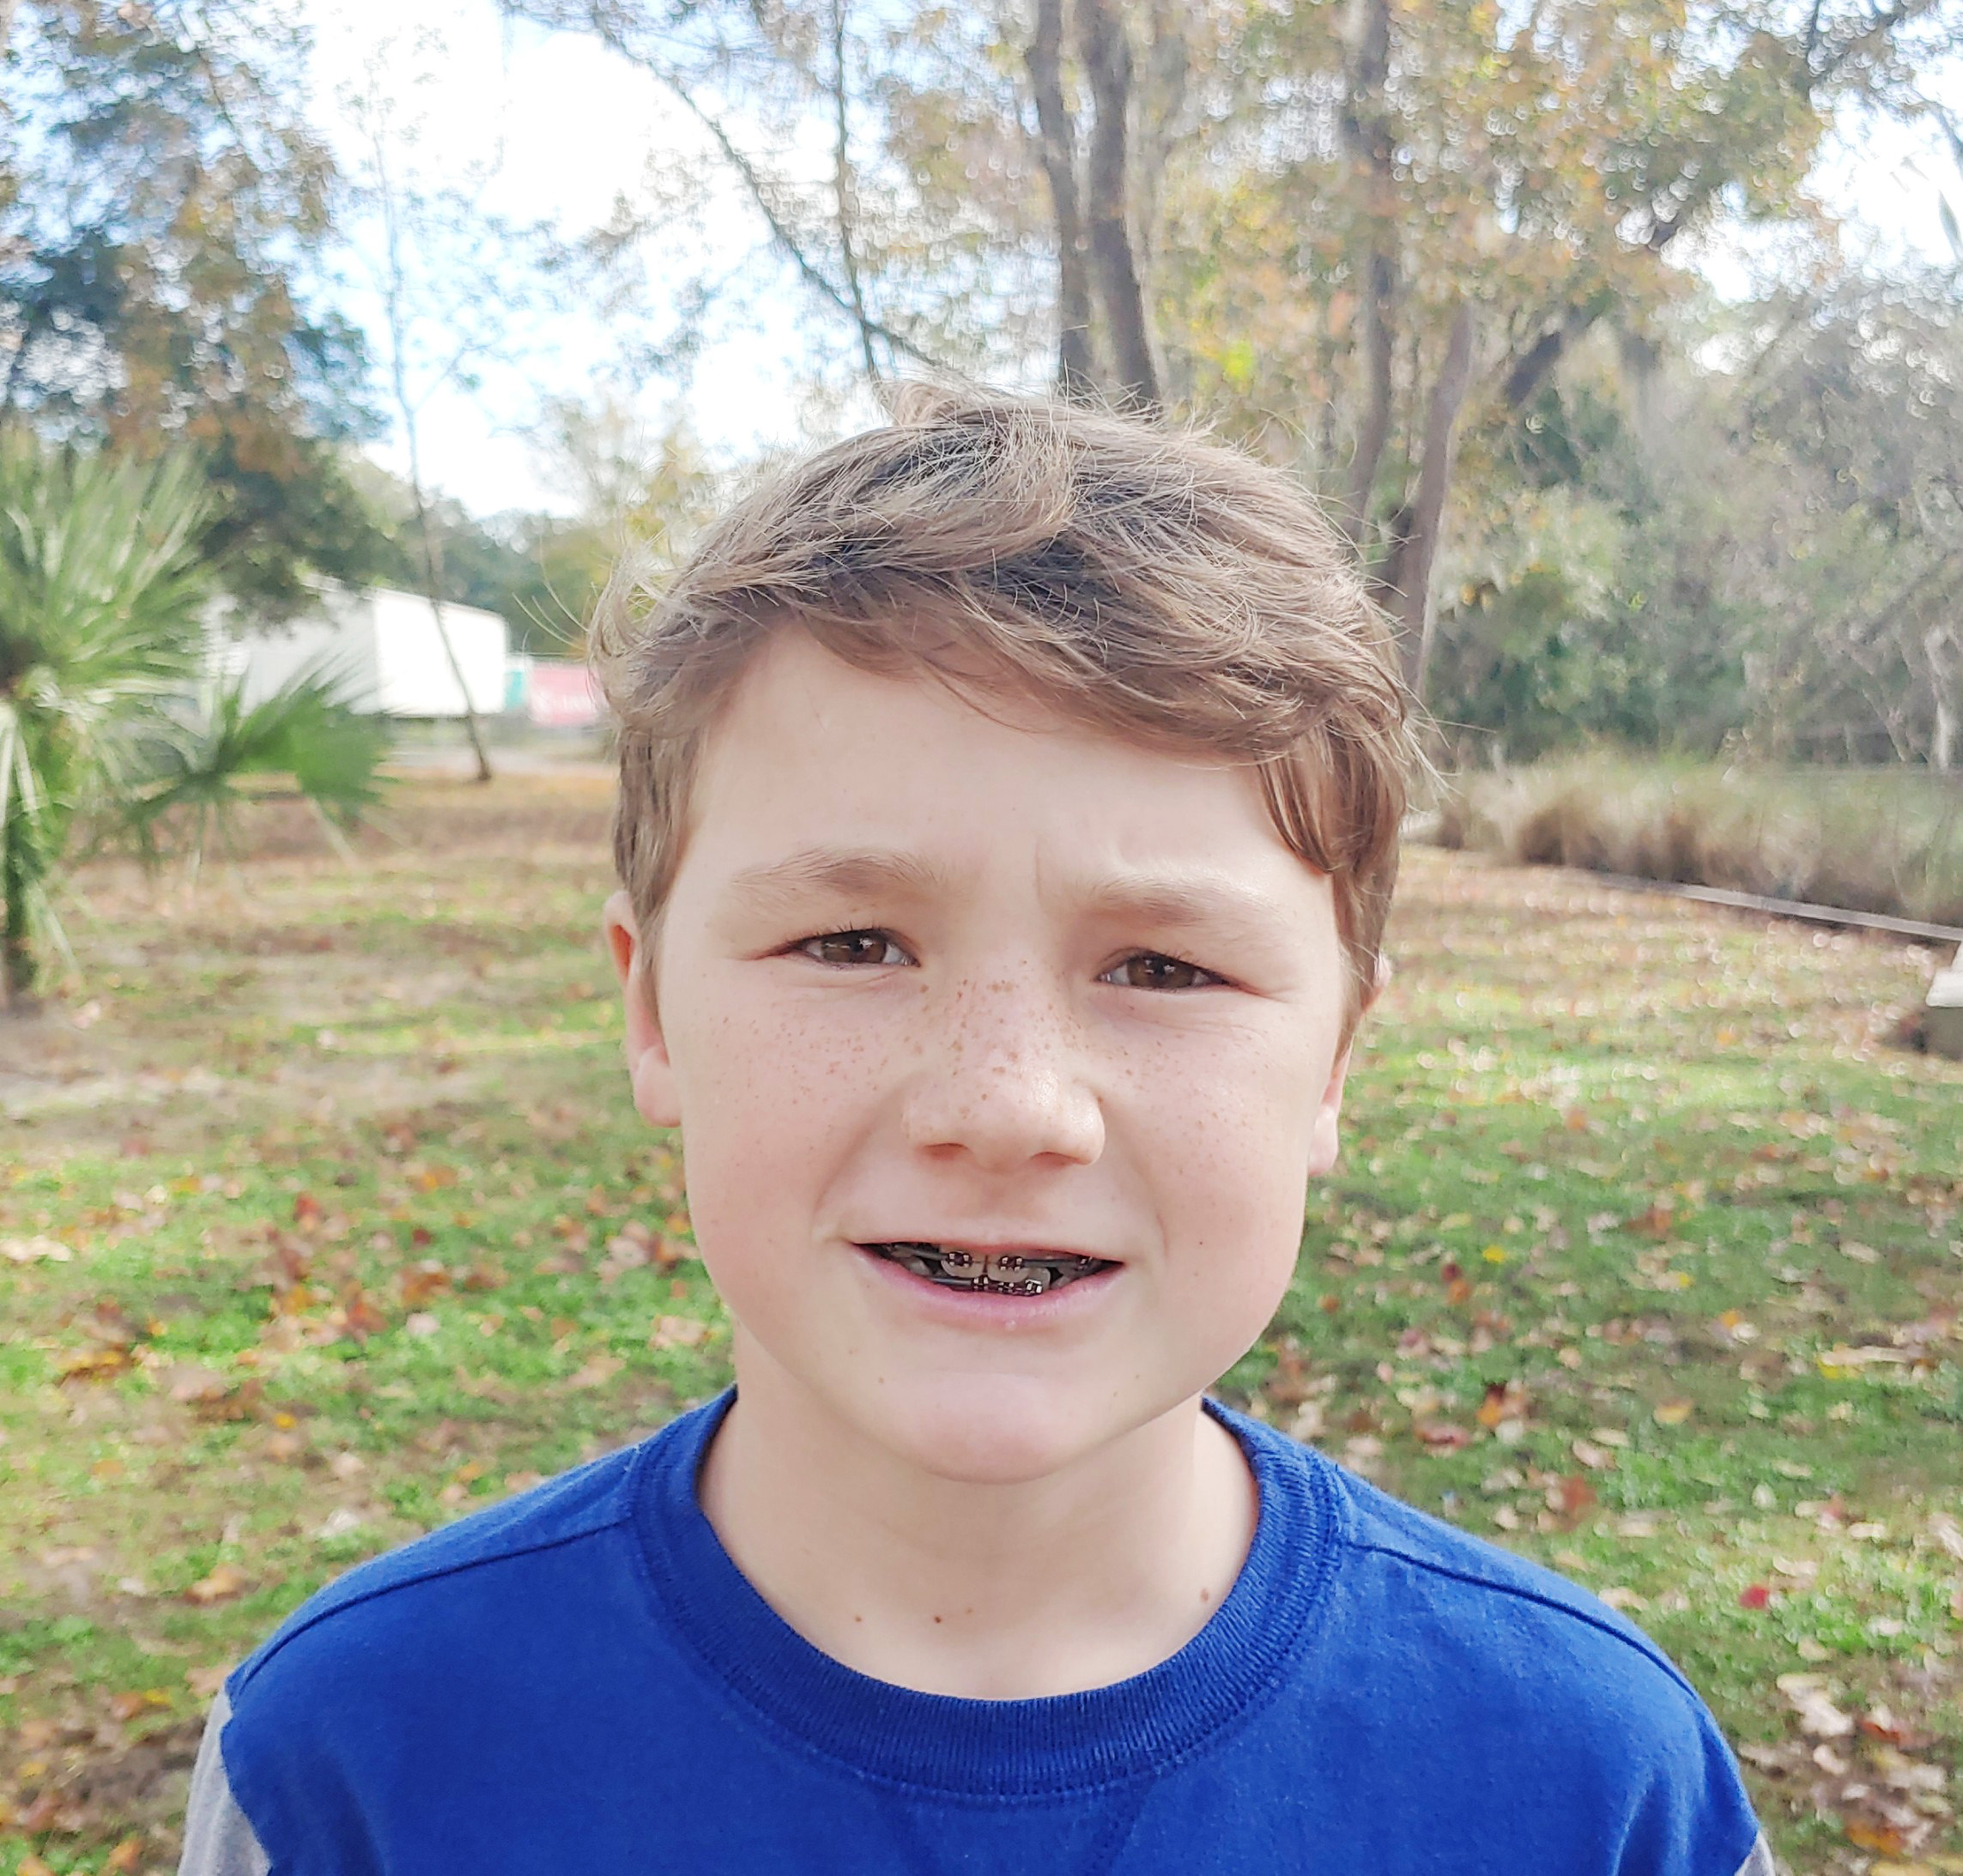 I like cake and my favorite is cookies and cream cake. Hayden, age 9  Daniel Island